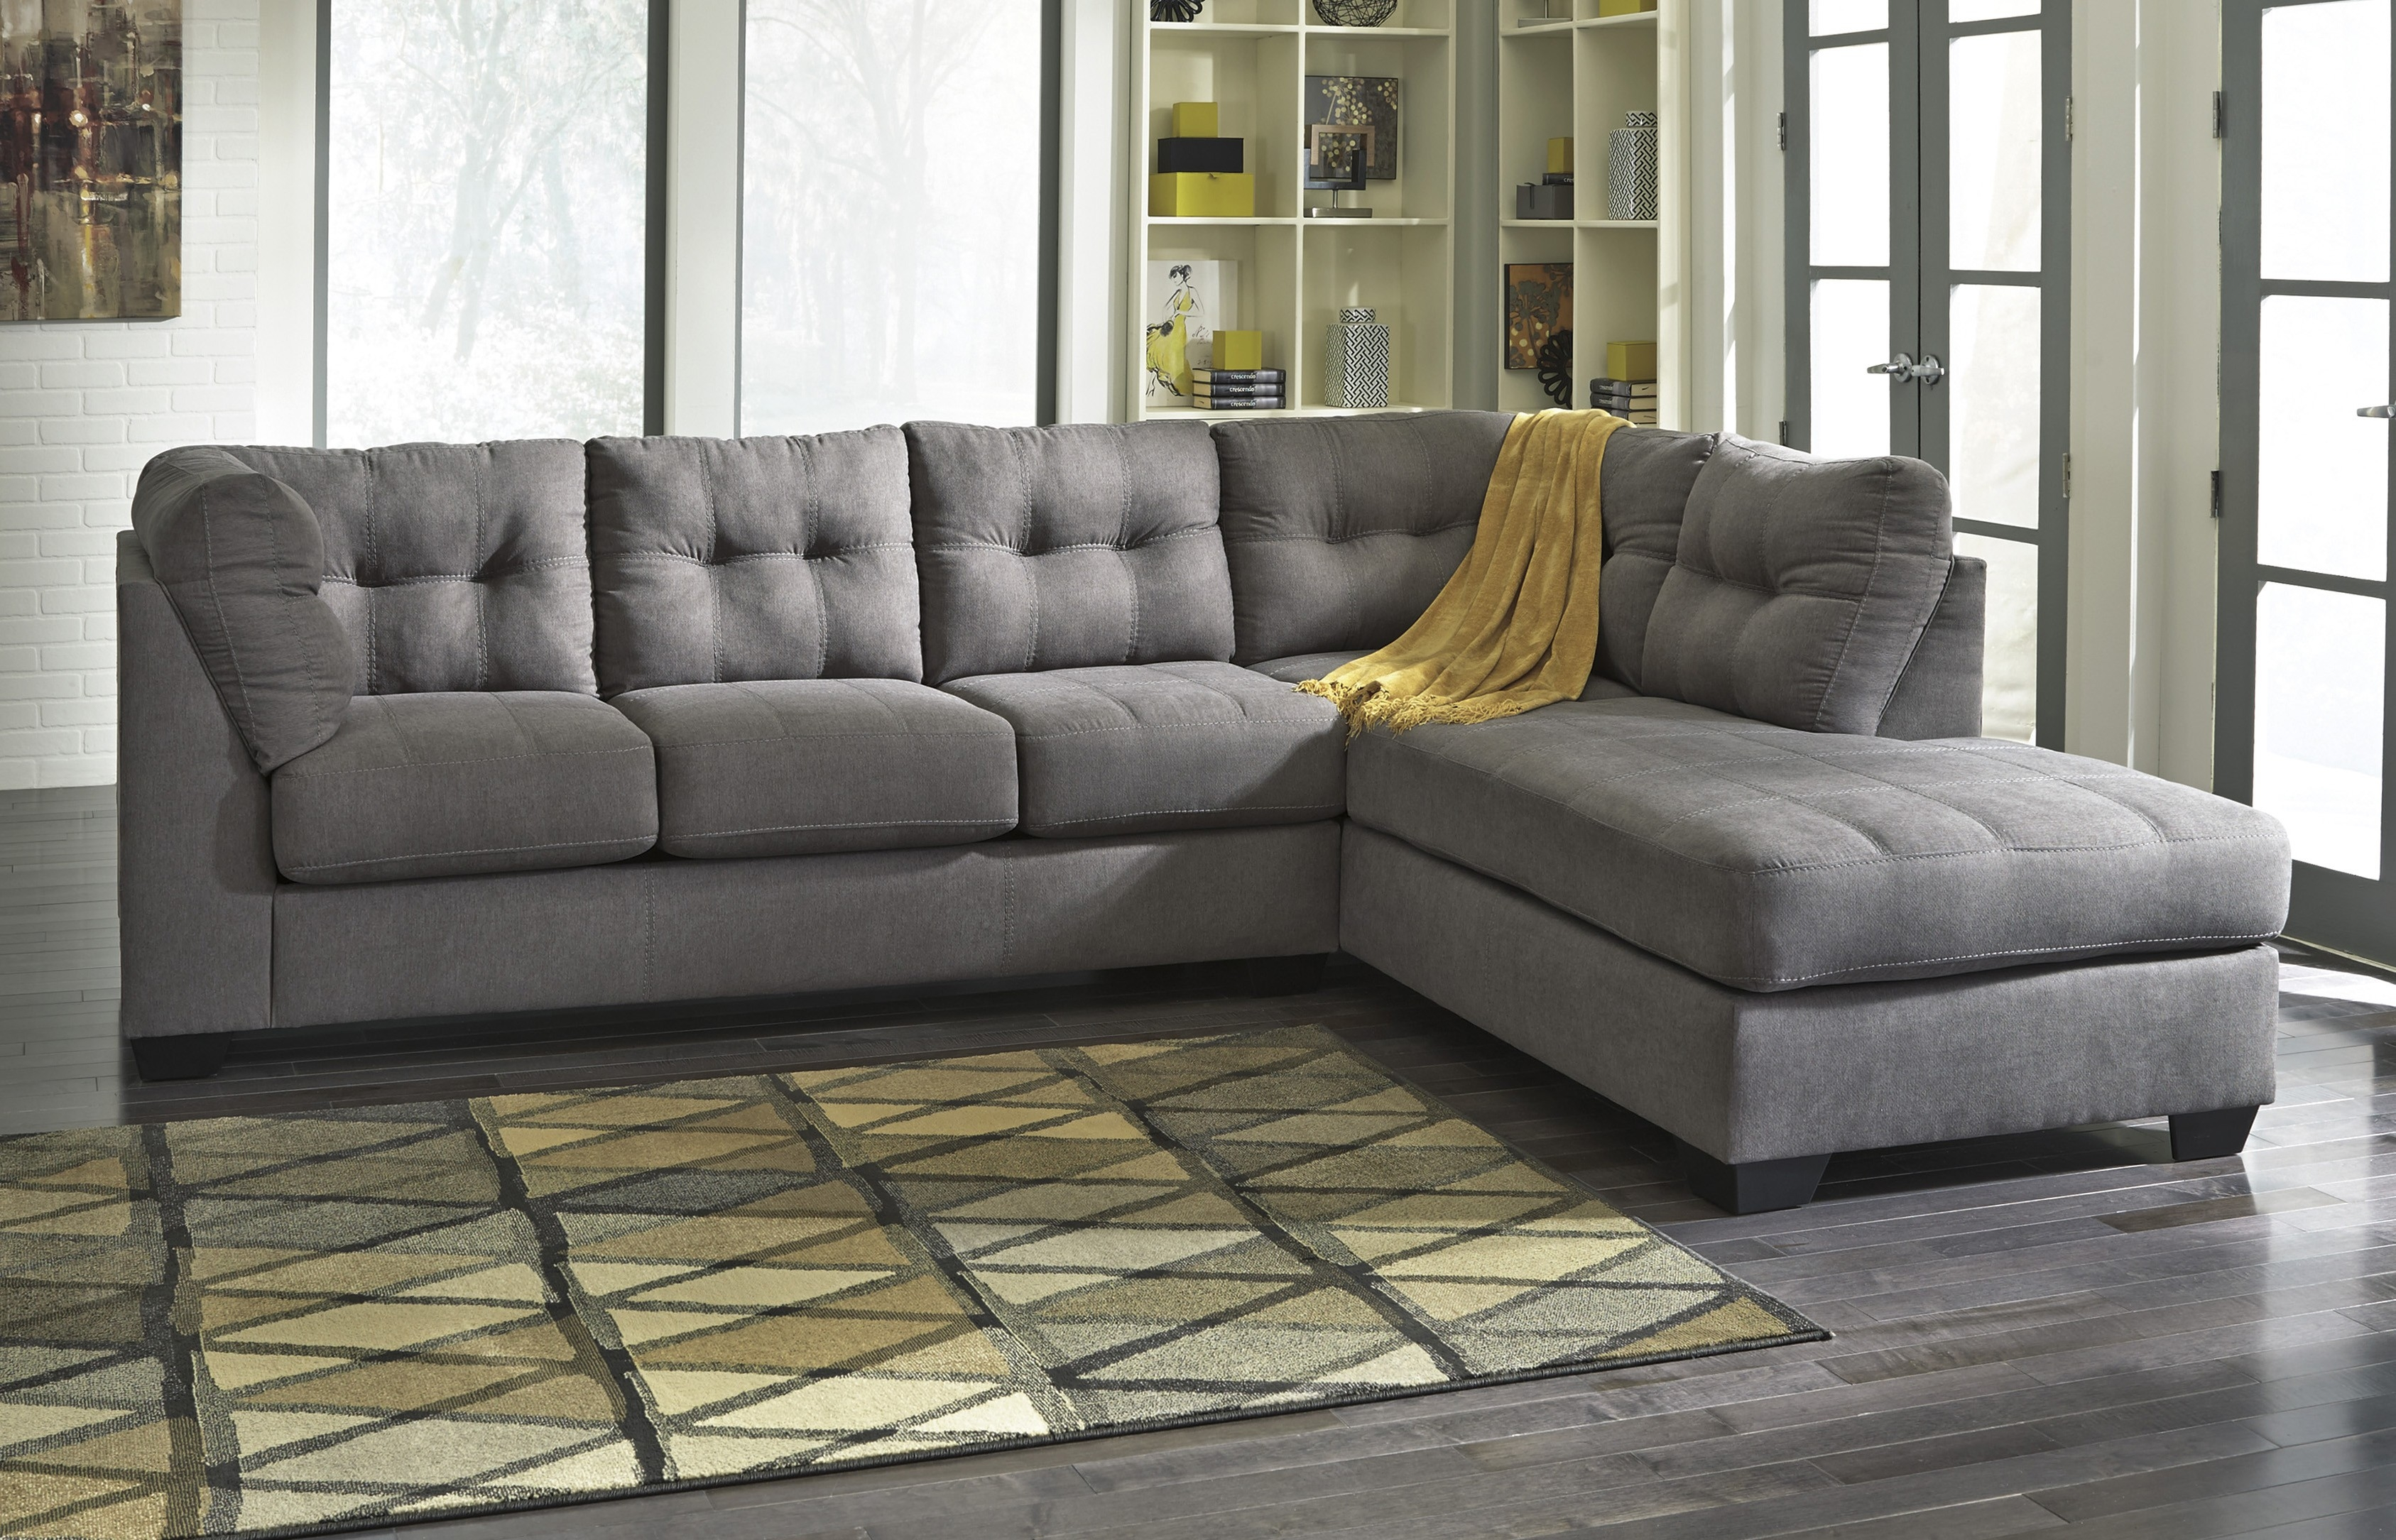 Maier Sectional Charcoal Gray Ashley Furniture Orange County Pertaining To Ashley Furniture Gray Sofa (View 2 of 12)